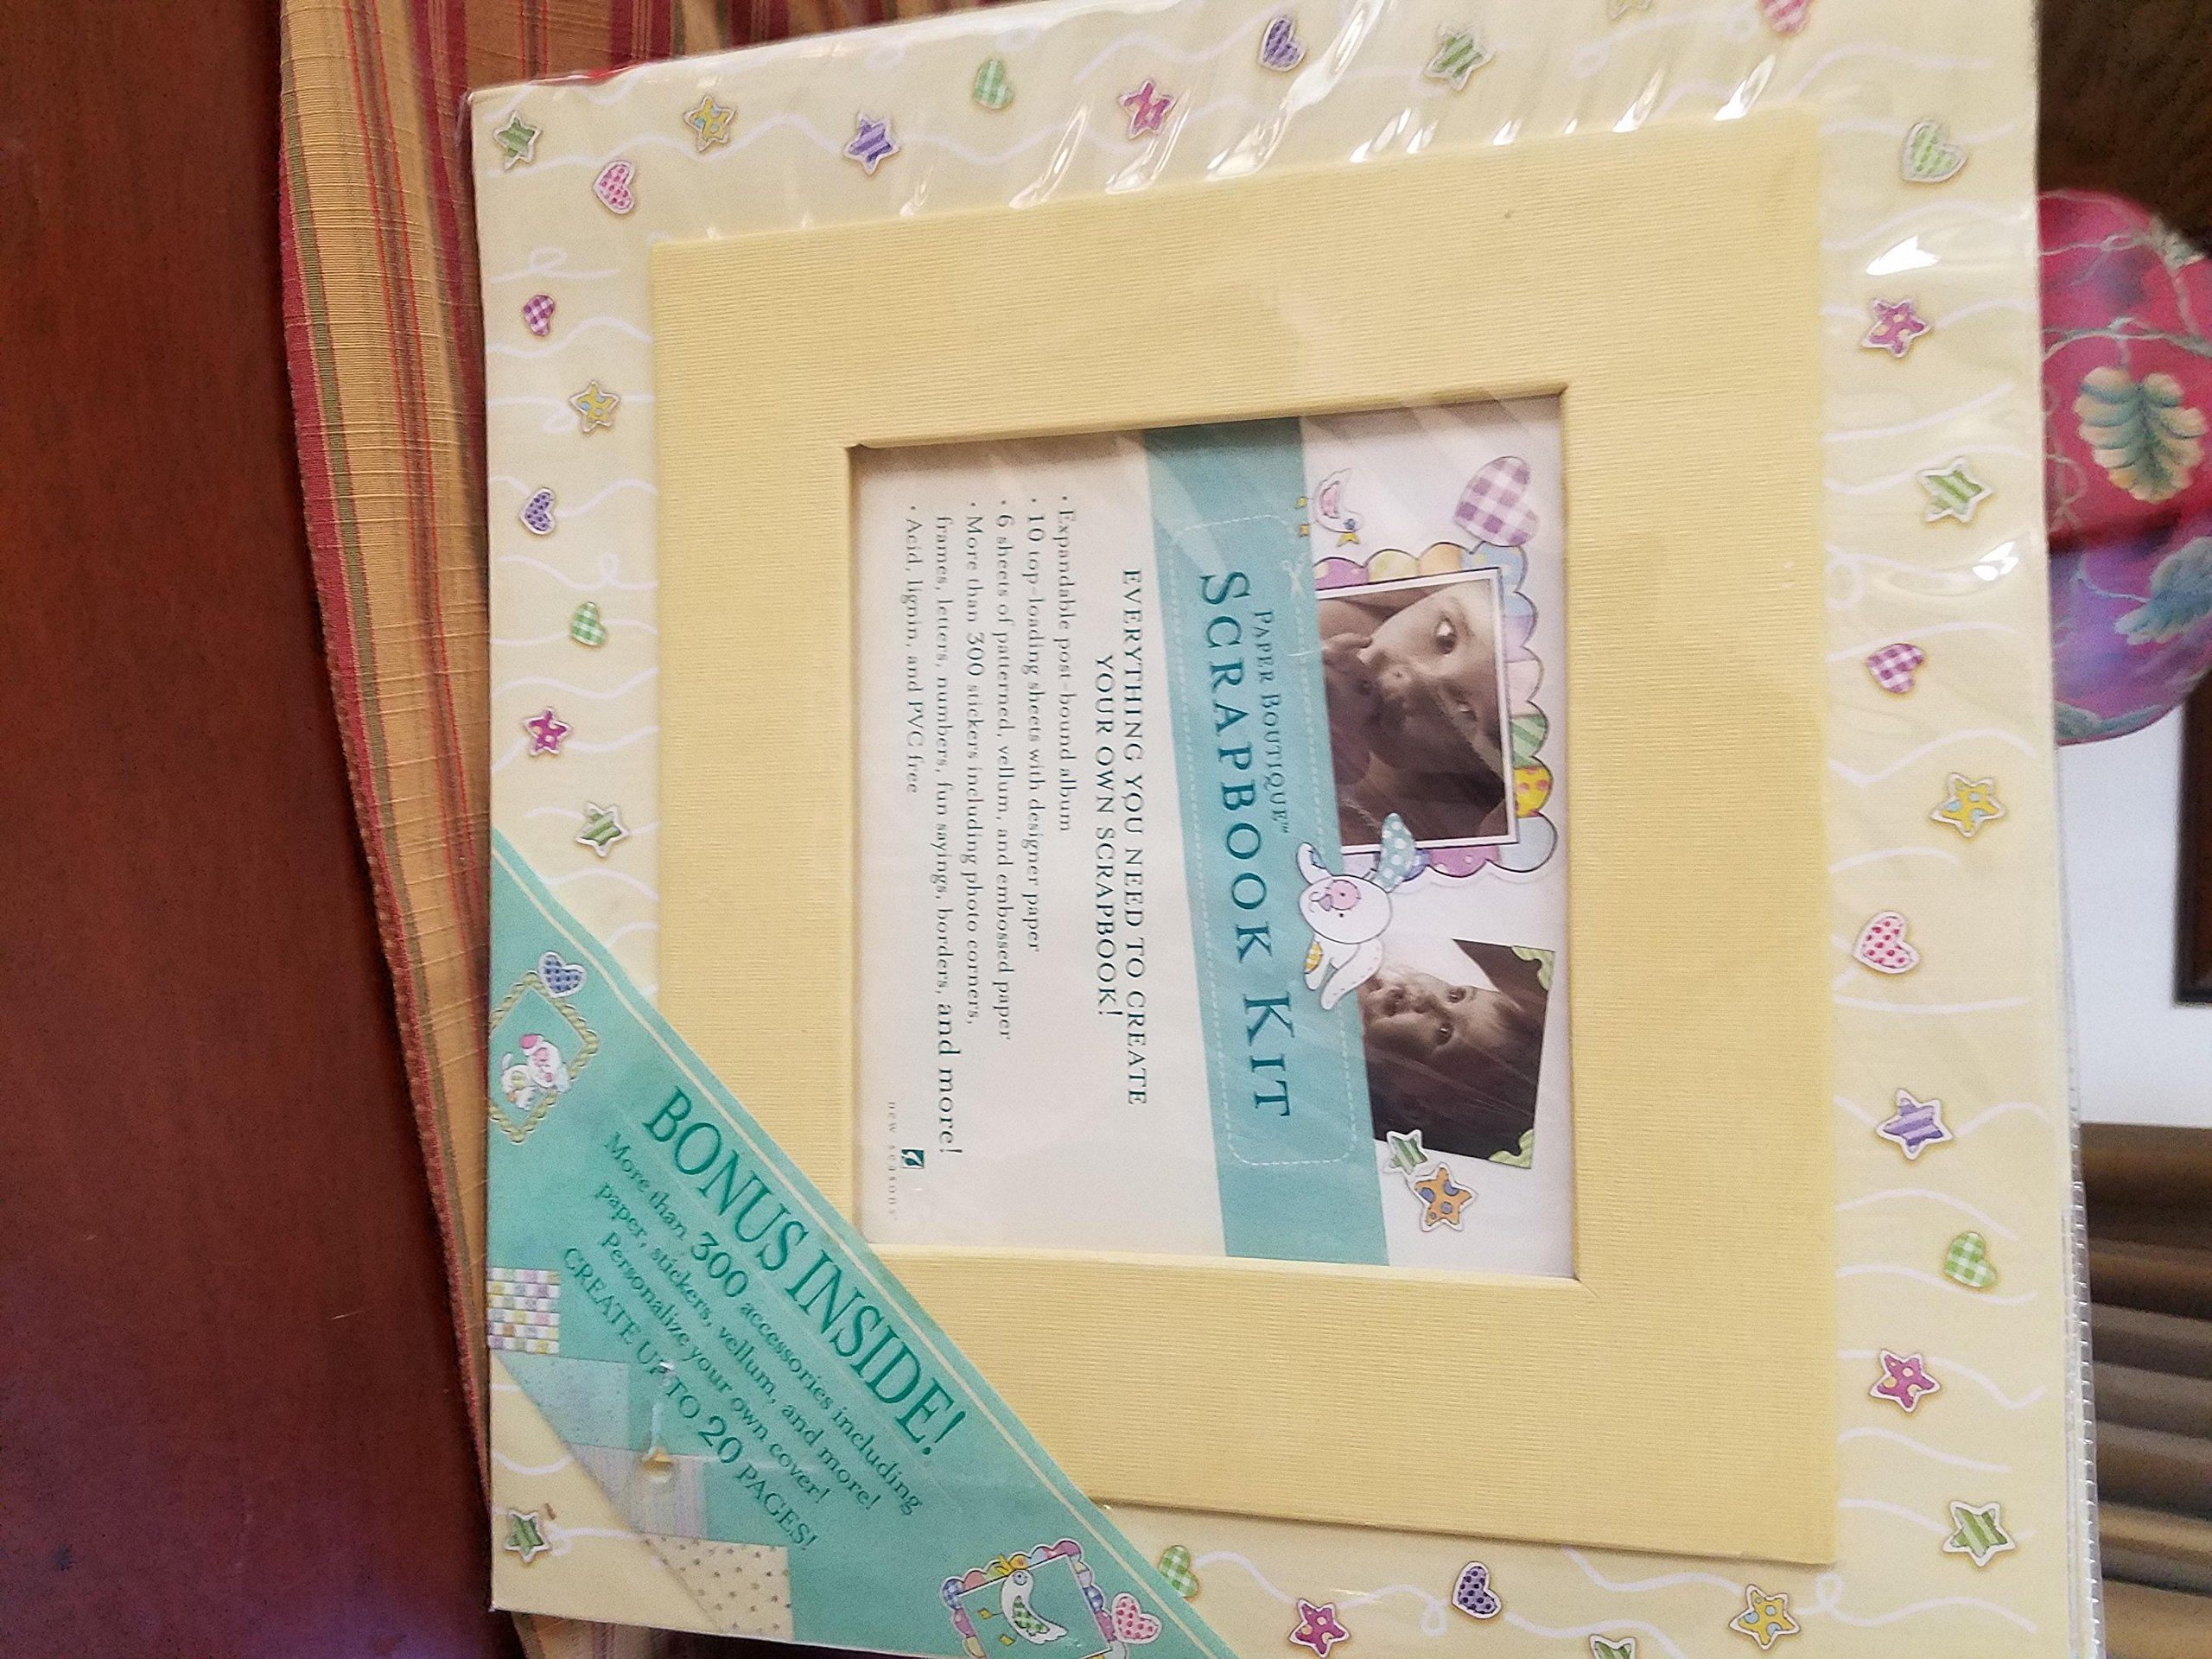 Deluxe Scrapbook Kit - Everything included. Baby/Child Boy or Girl (Kit is Yellow} Huge 14x12.5 inch size